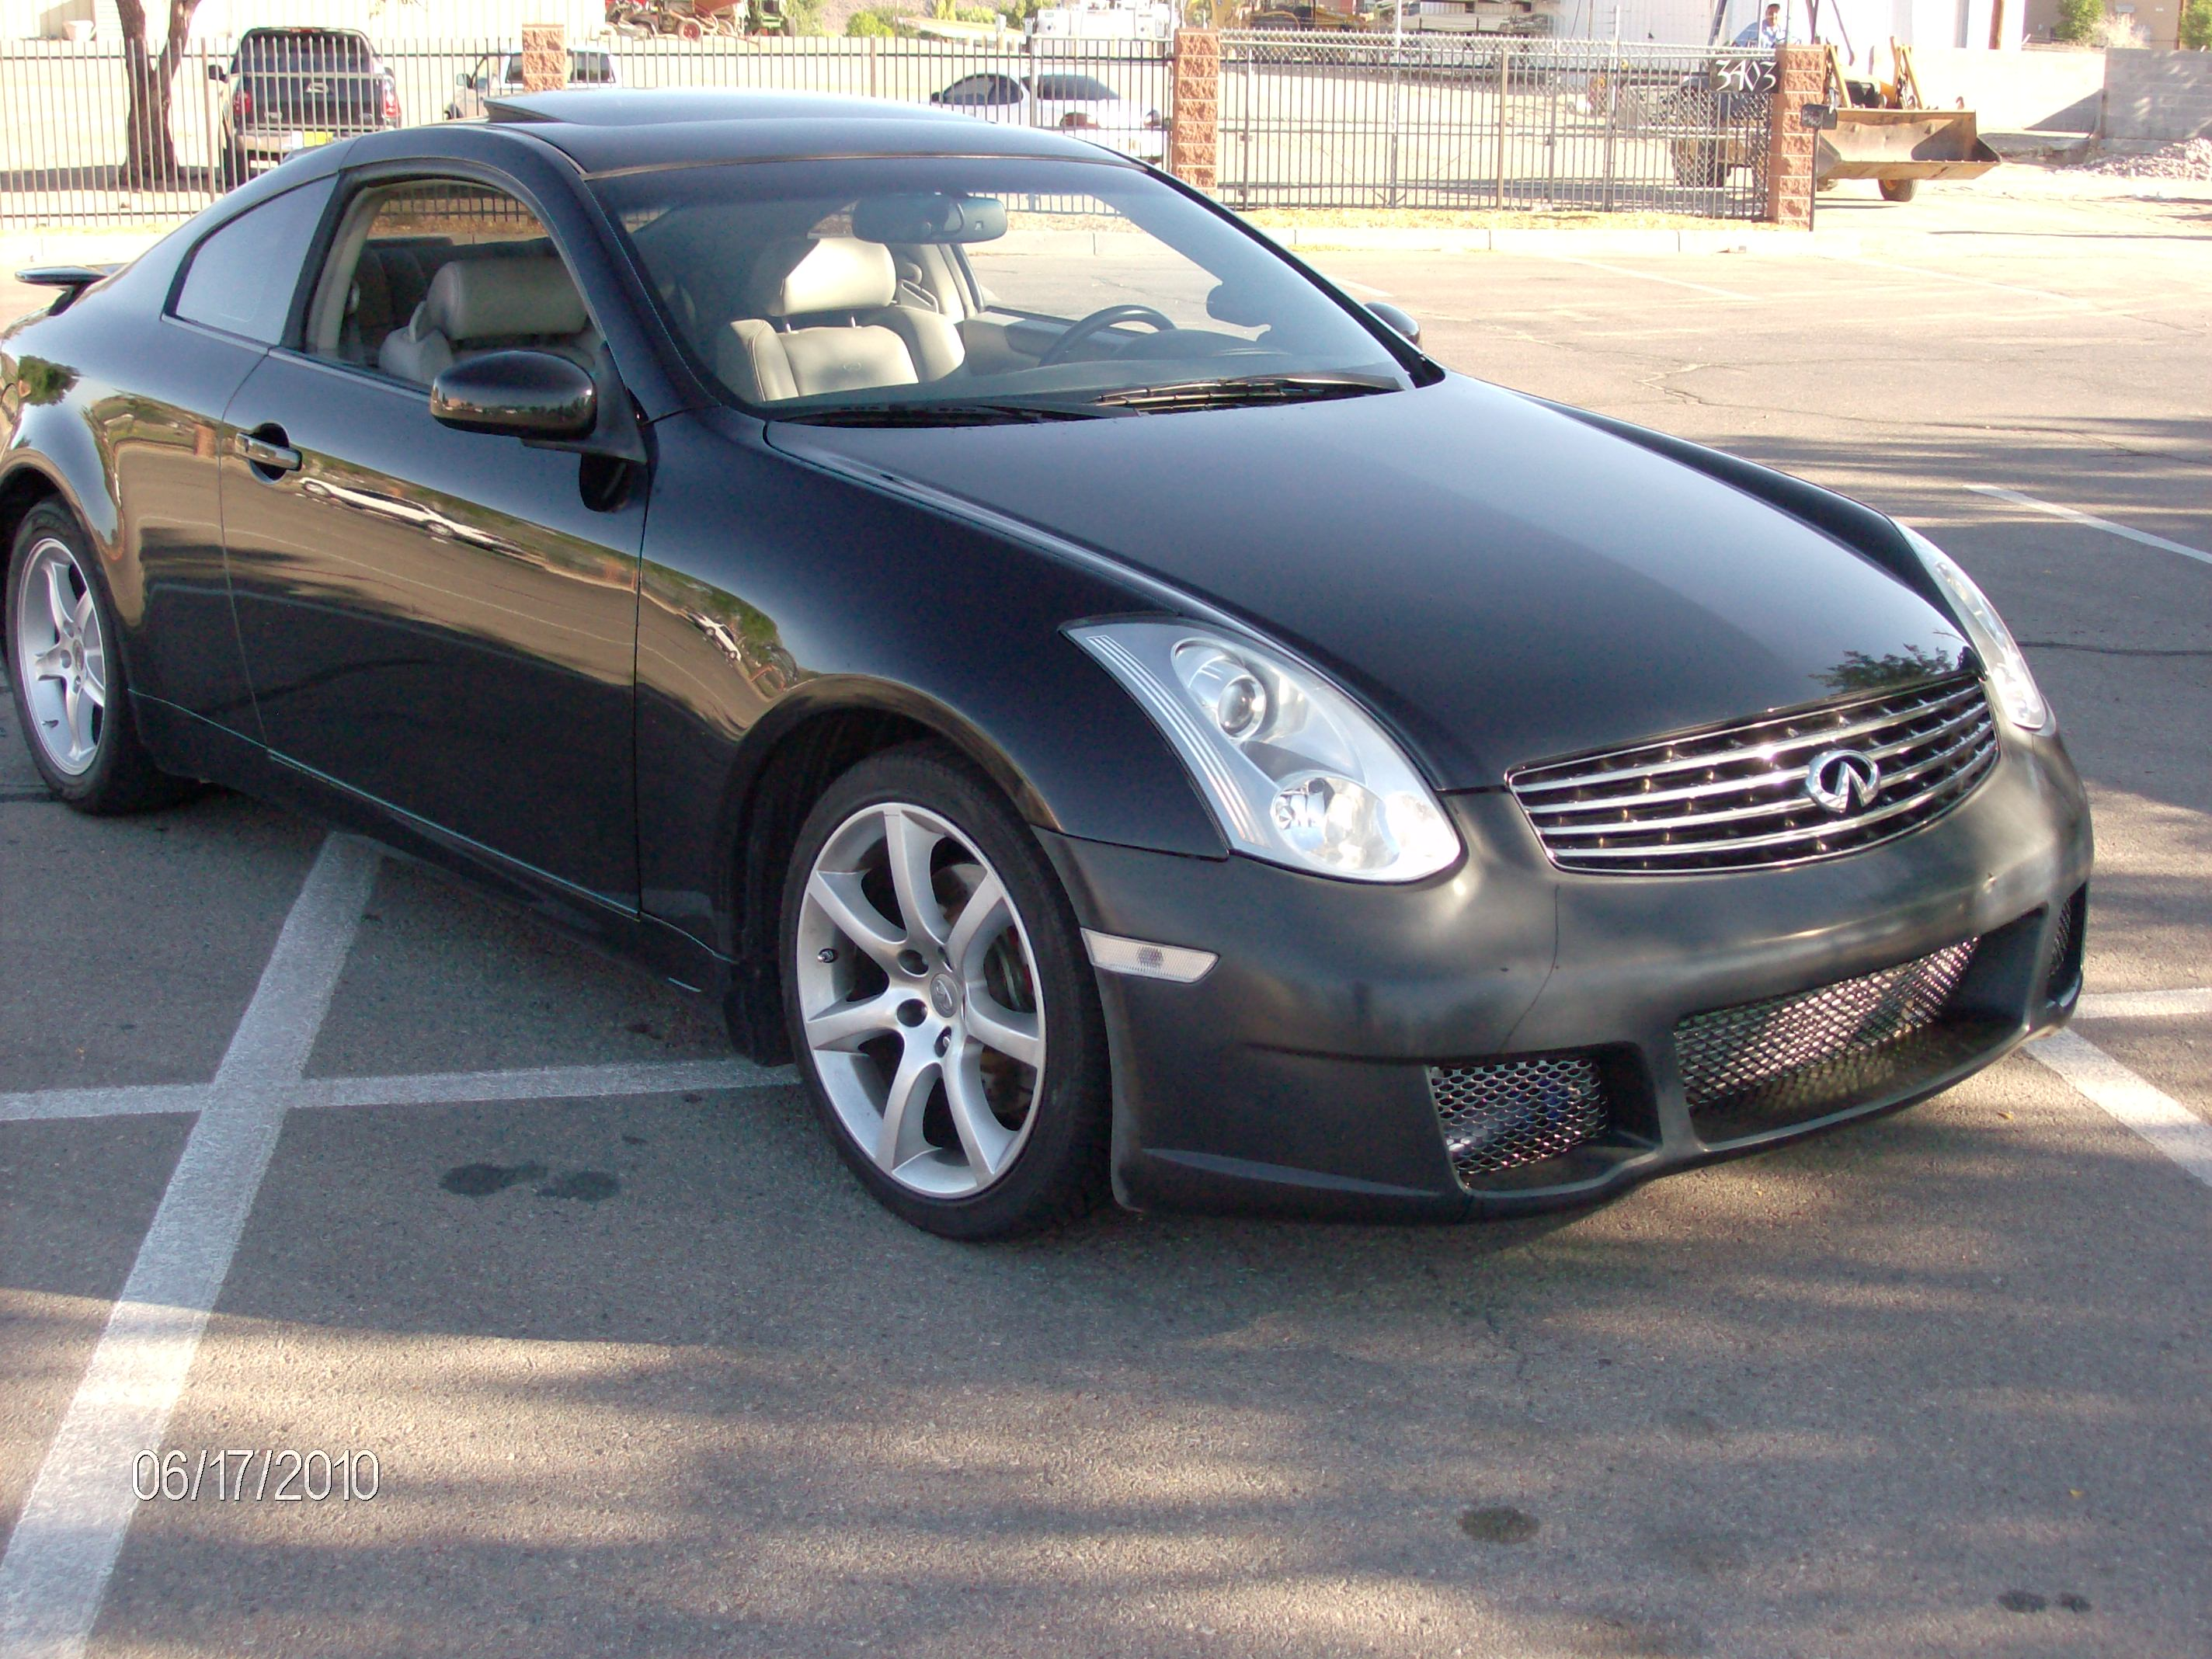 2006 infiniti g35 coupe 1 4 mile drag racing timeslip specs 0 60. Black Bedroom Furniture Sets. Home Design Ideas